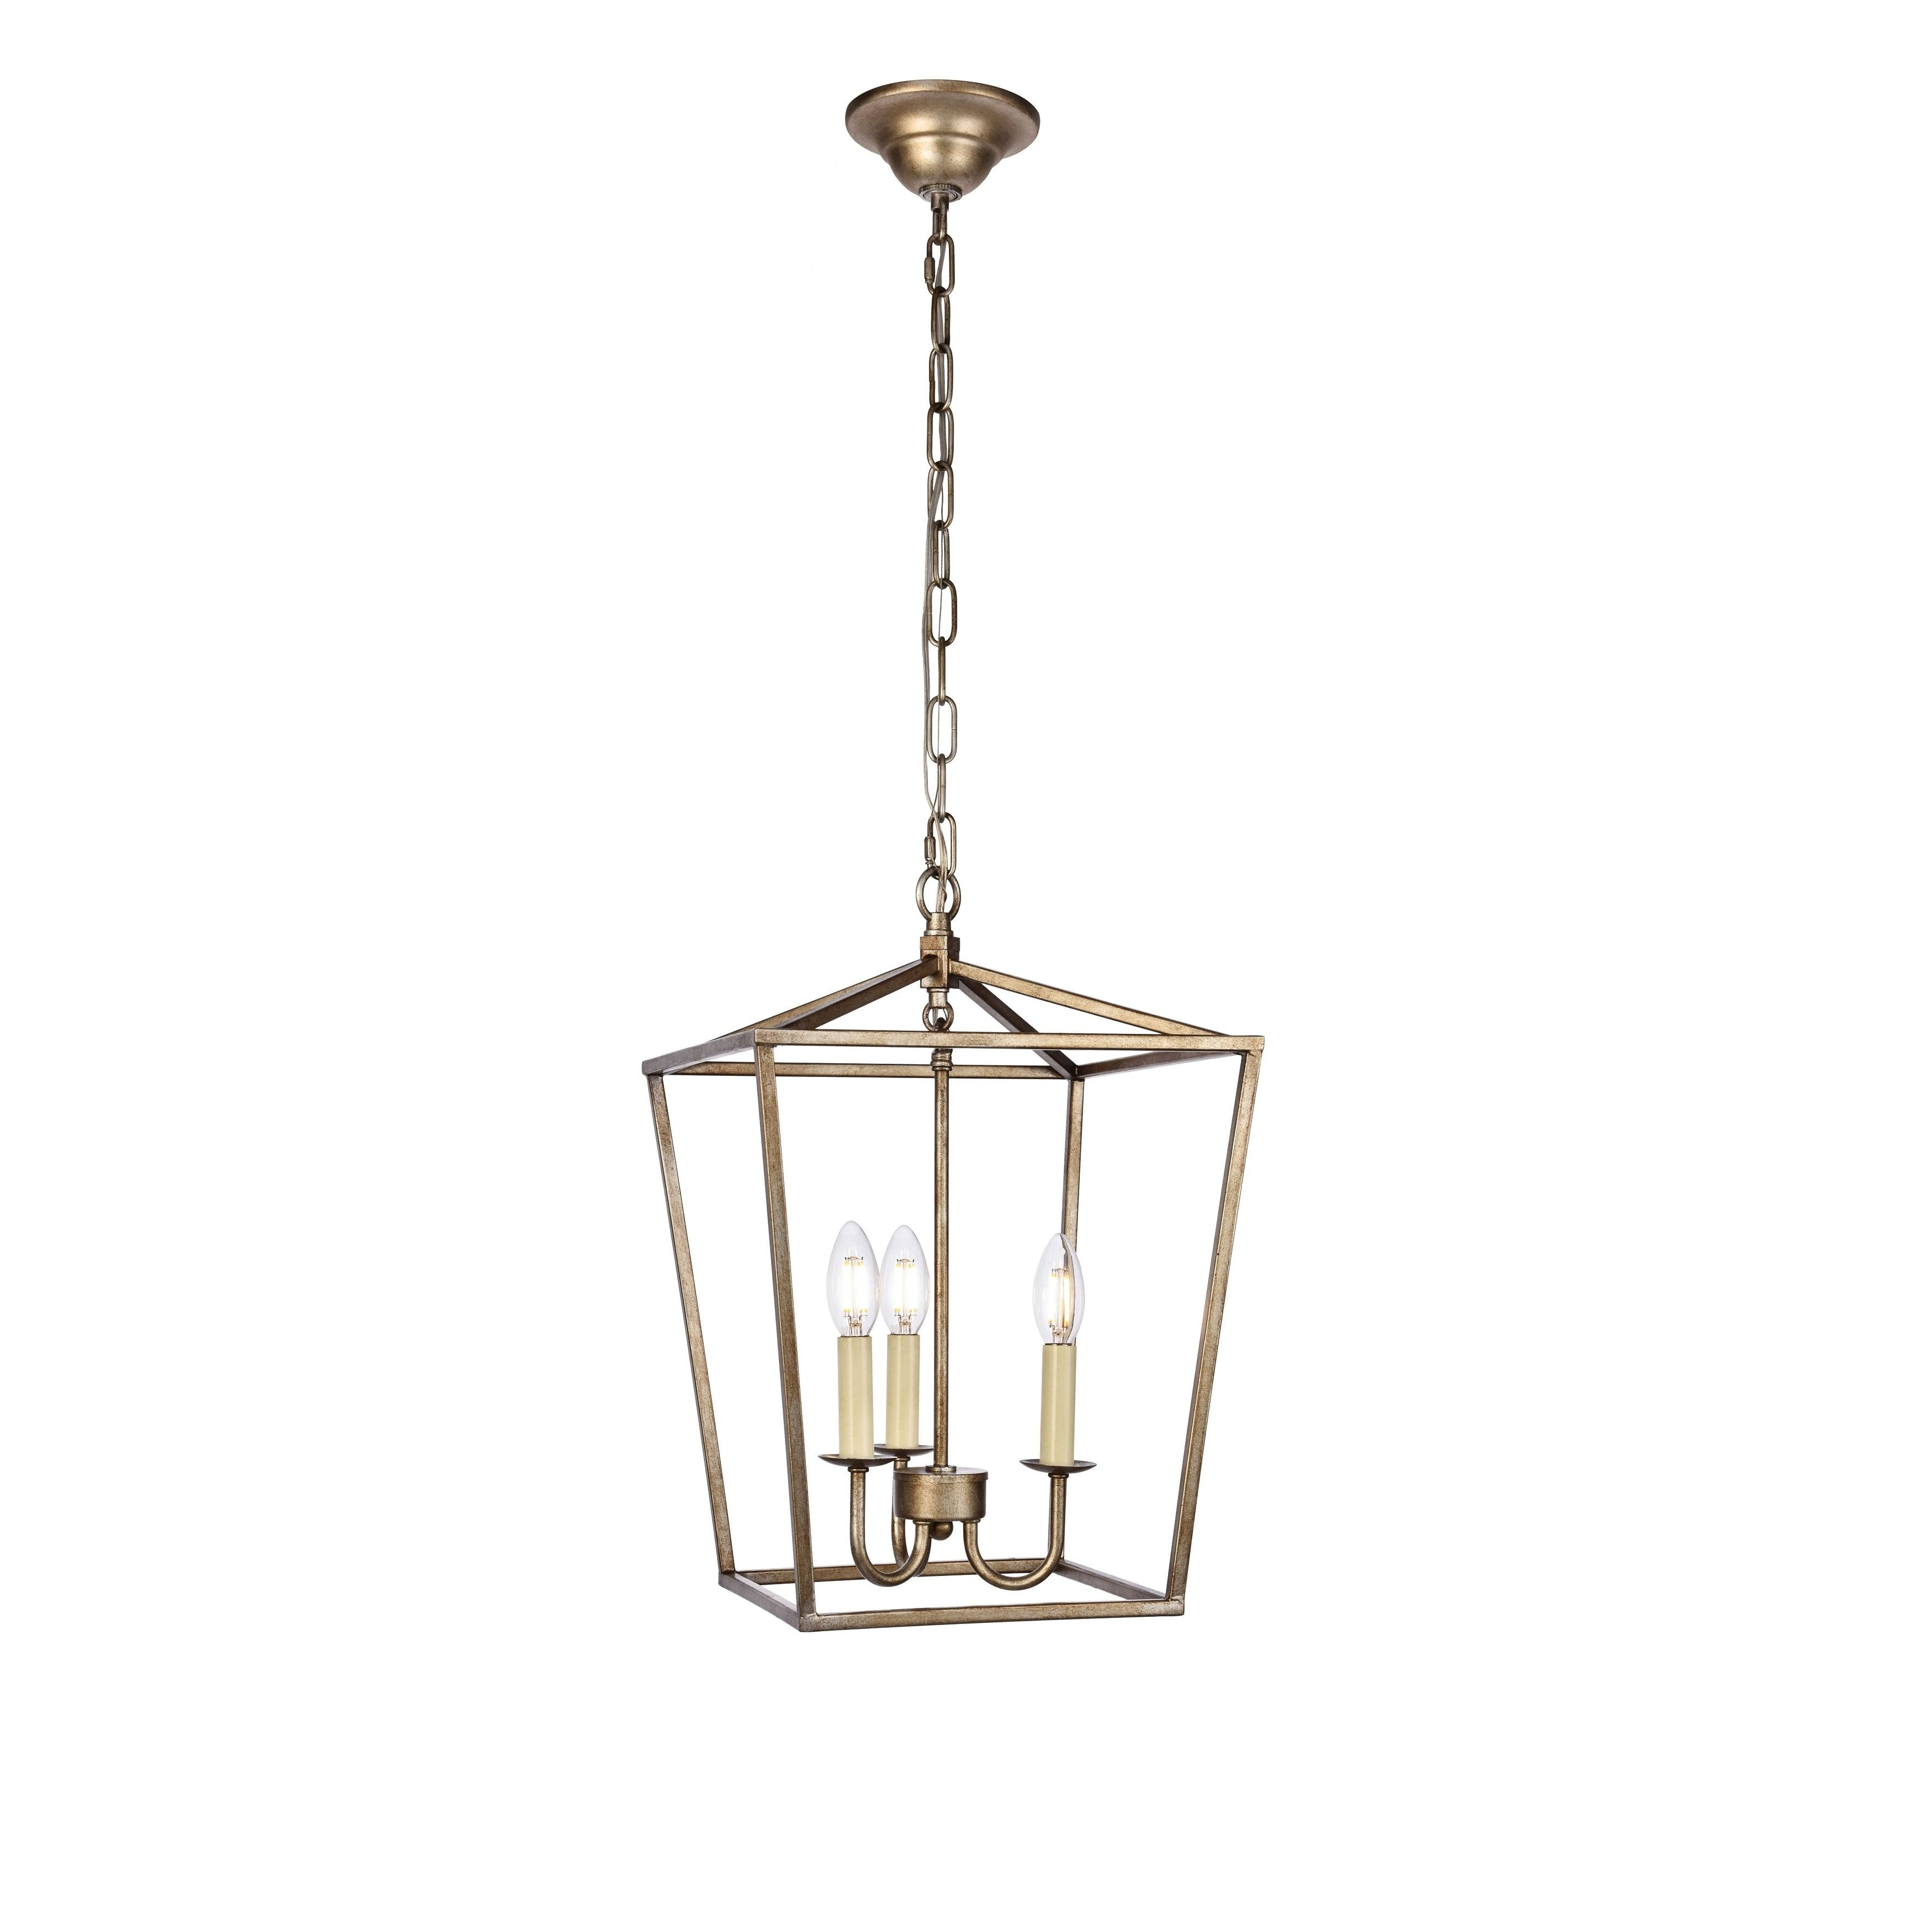 Elegant Maddox Collection Pendant D12.5 H18.25 Lt:3 Vintage within Well known Finnick 3-Light Lantern Pendants